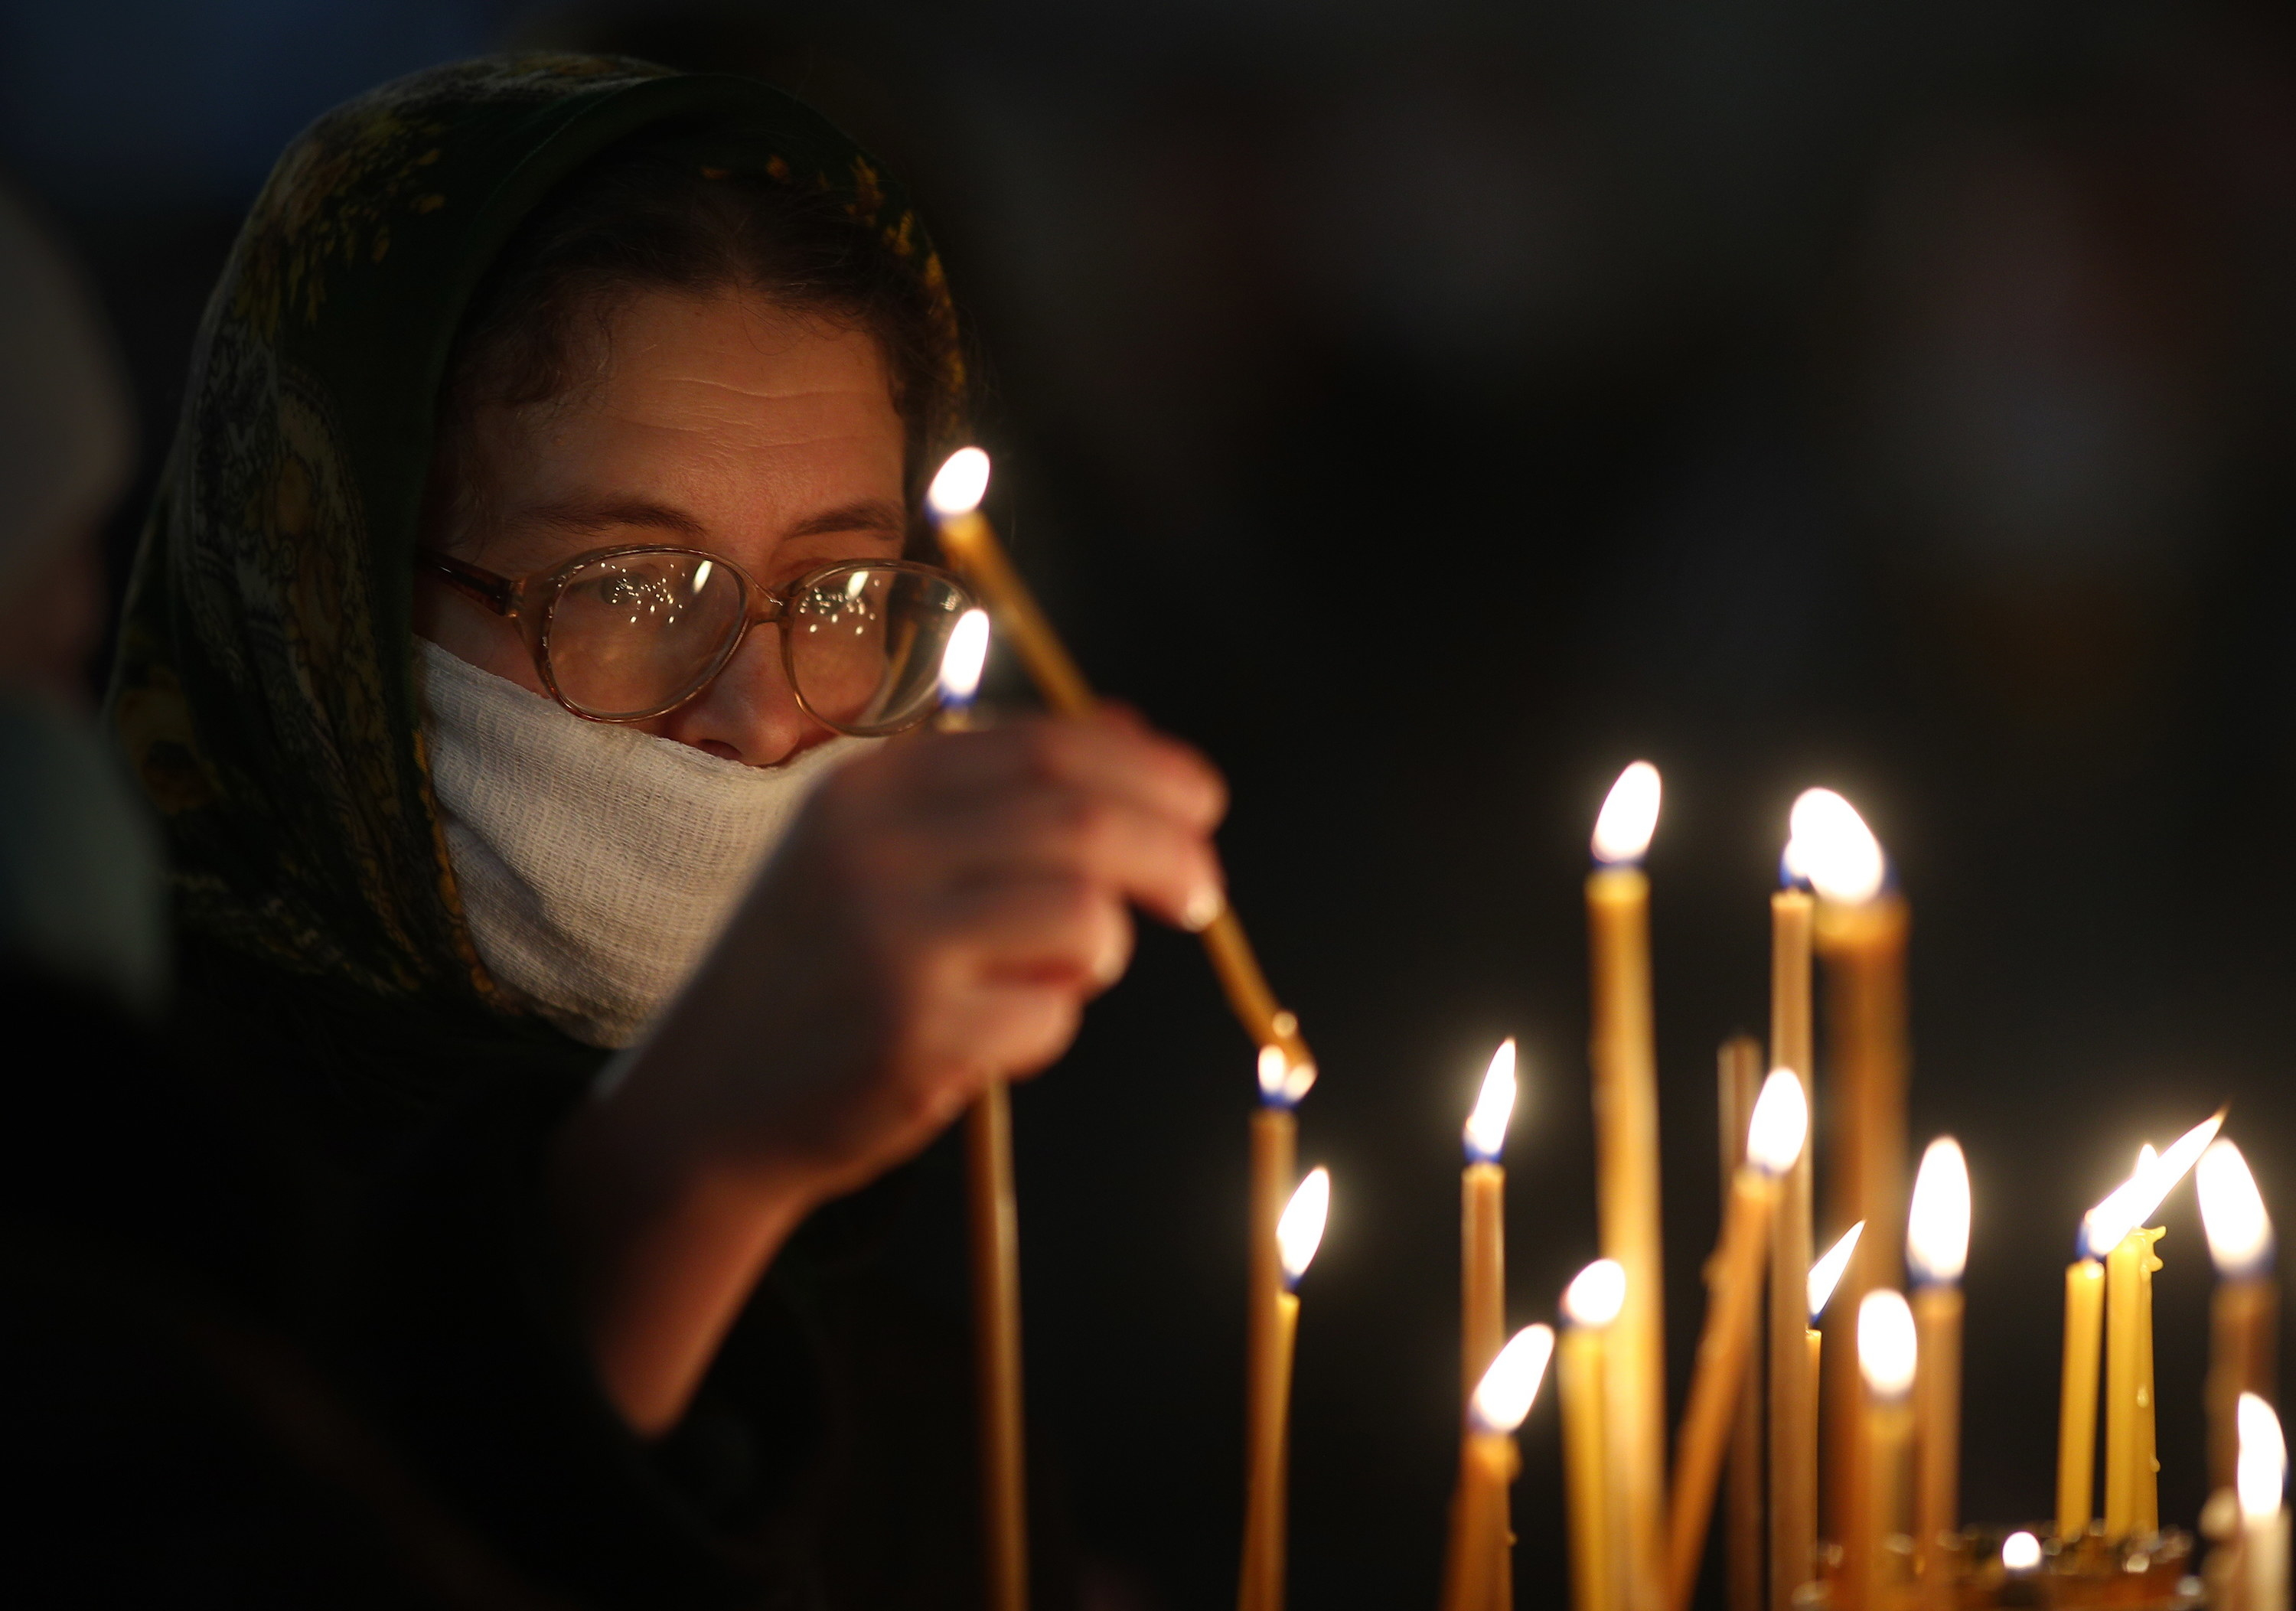 A woman in a face mask lighting candles in a church